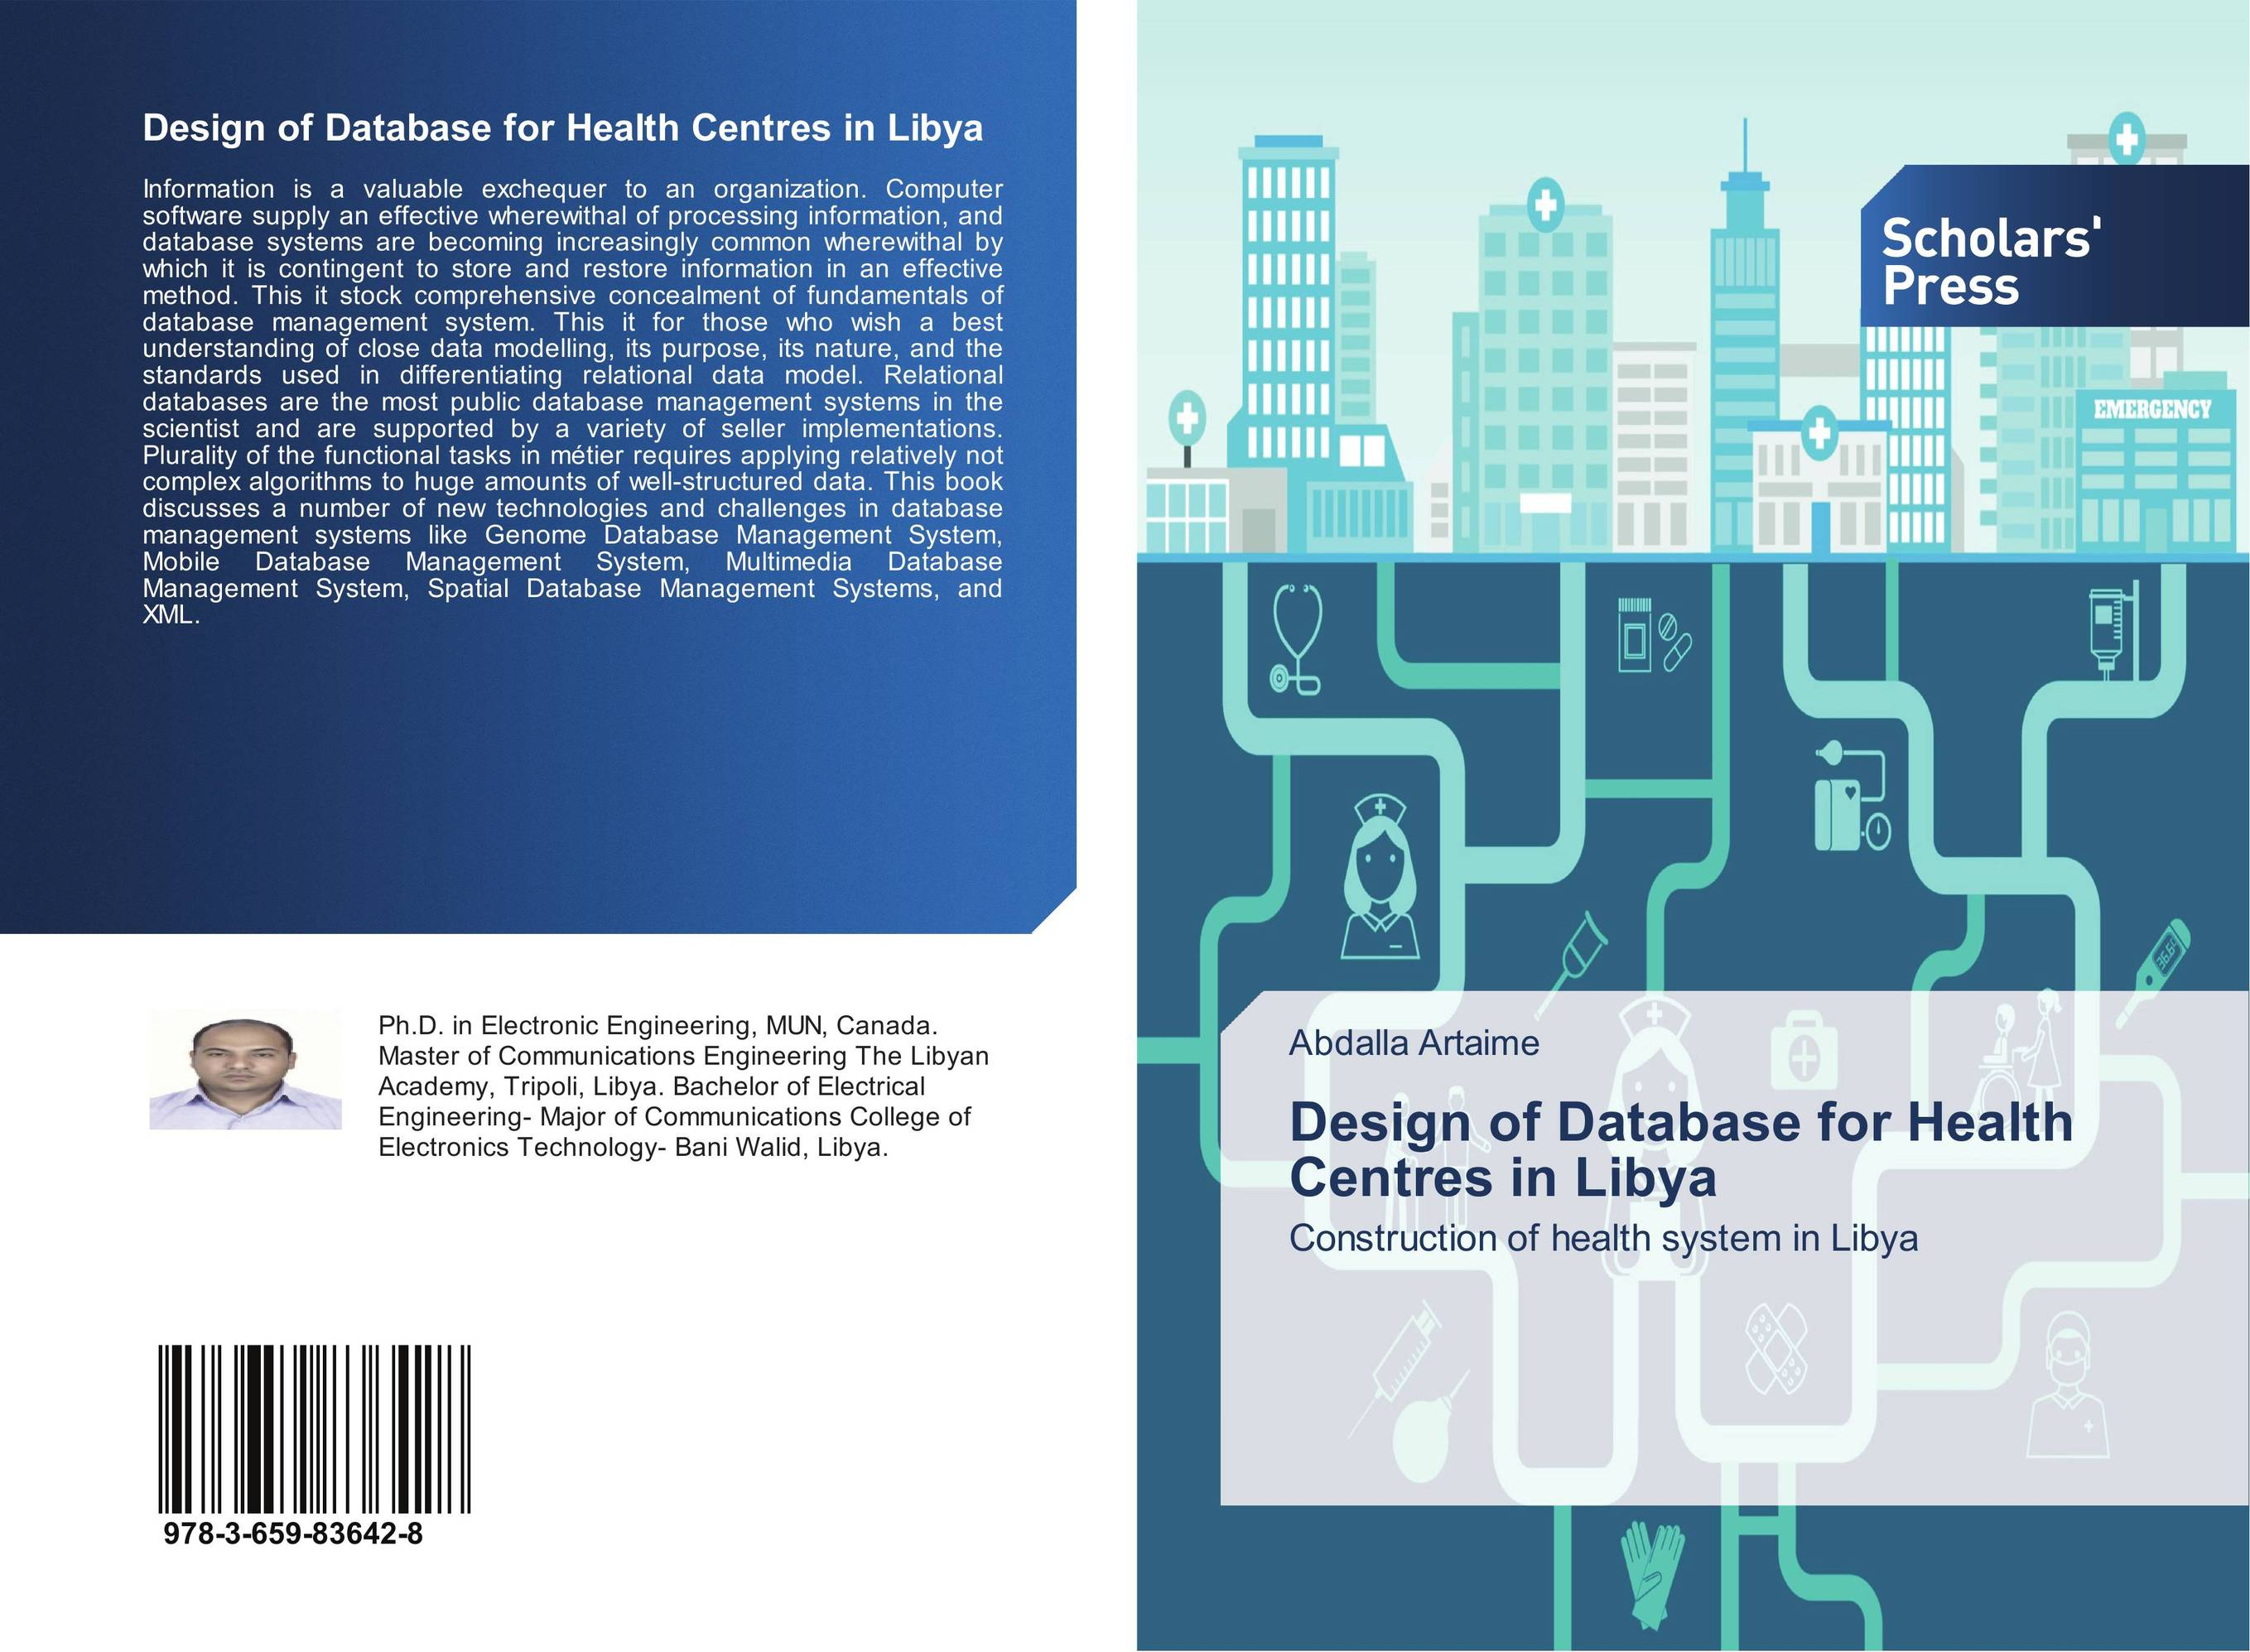 Design of Database for Health Centres in Libya fundamentals of database management systems